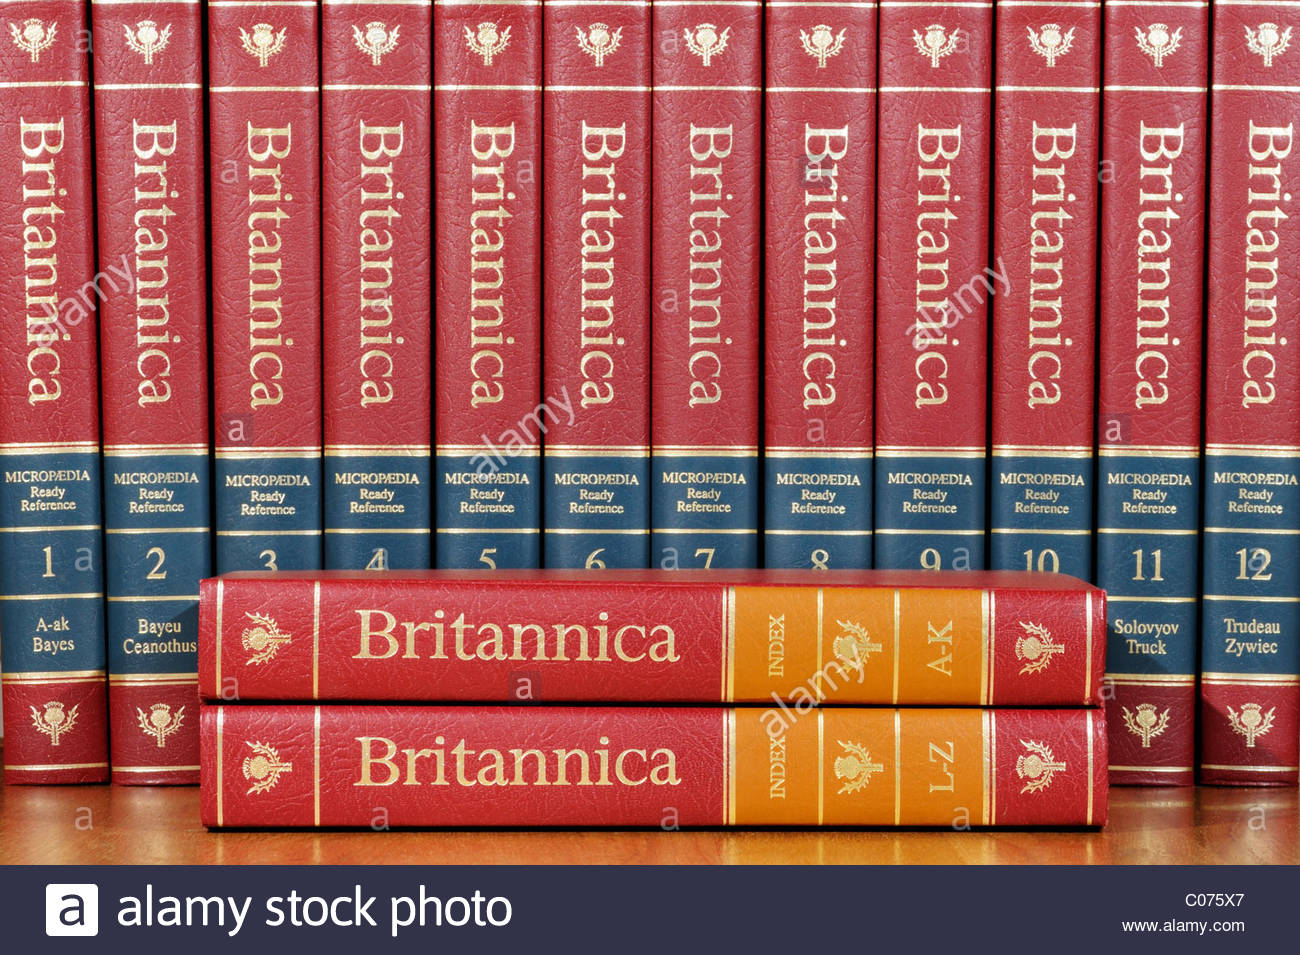 Encyclopedia Britannica Index books on a shelf with the reference books in the background, England - Stock Image